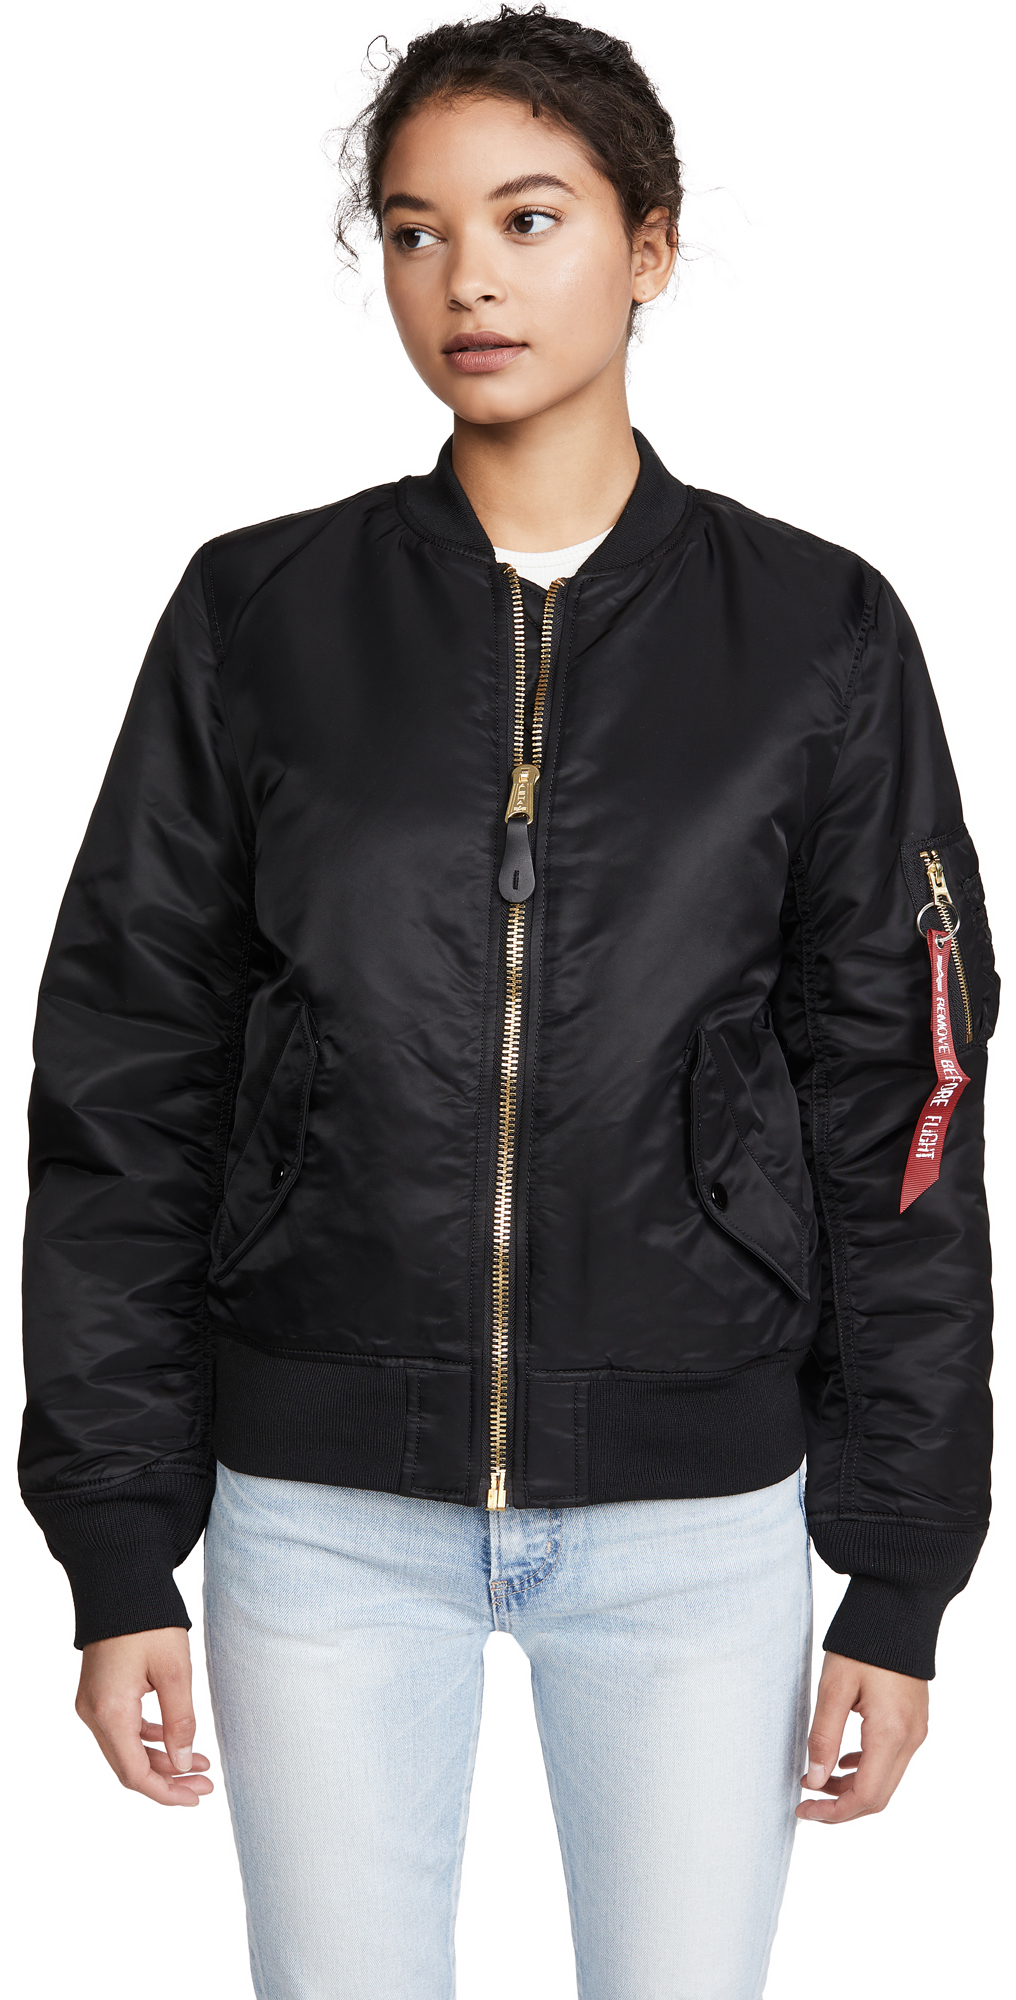 Alpha Industries MA-1 Reversible Bomber Jacket